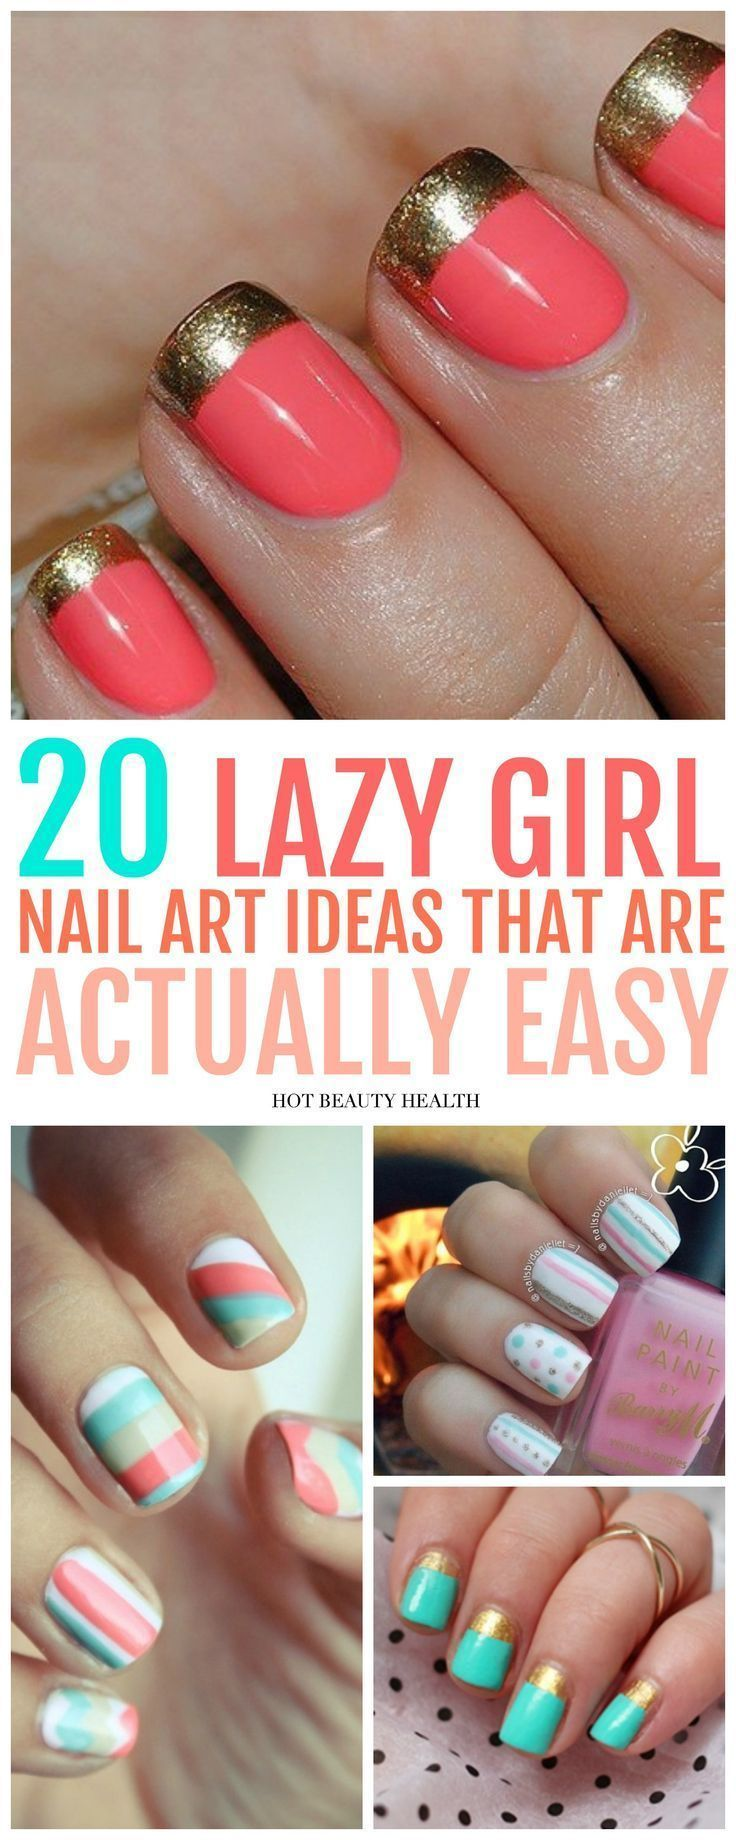 lazy girl nail art ideas that are actually easy cool nail